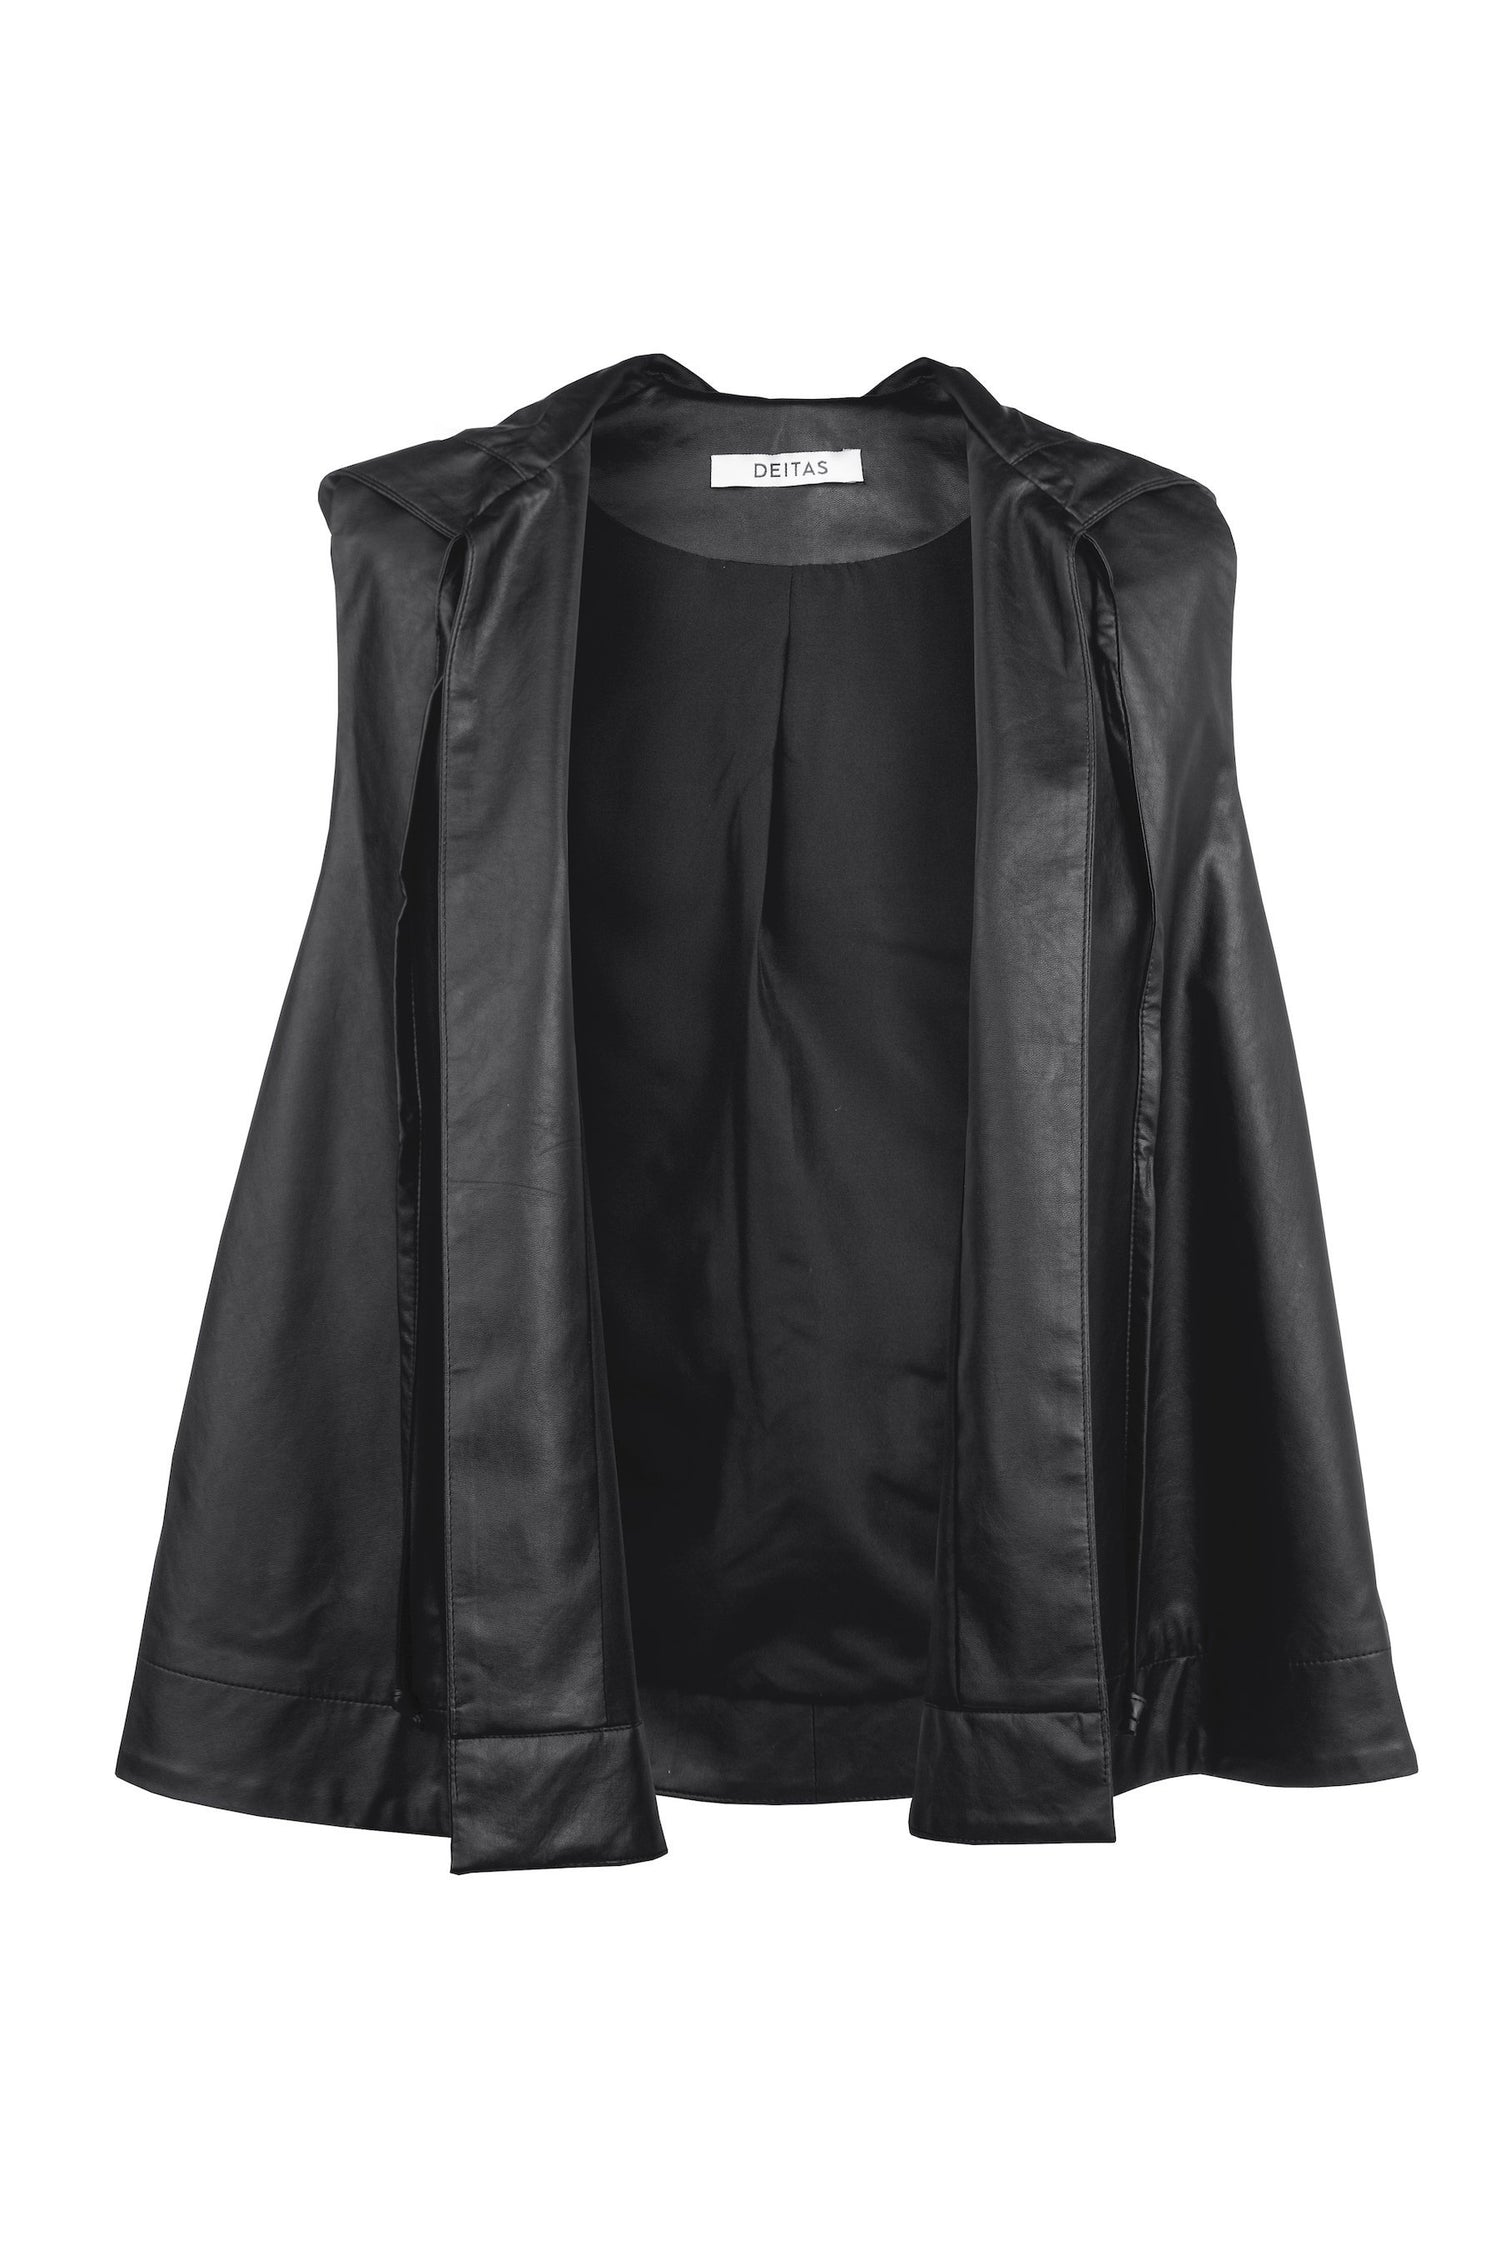 Veste Hoodie Vegan Leather Black Deitas Blouses